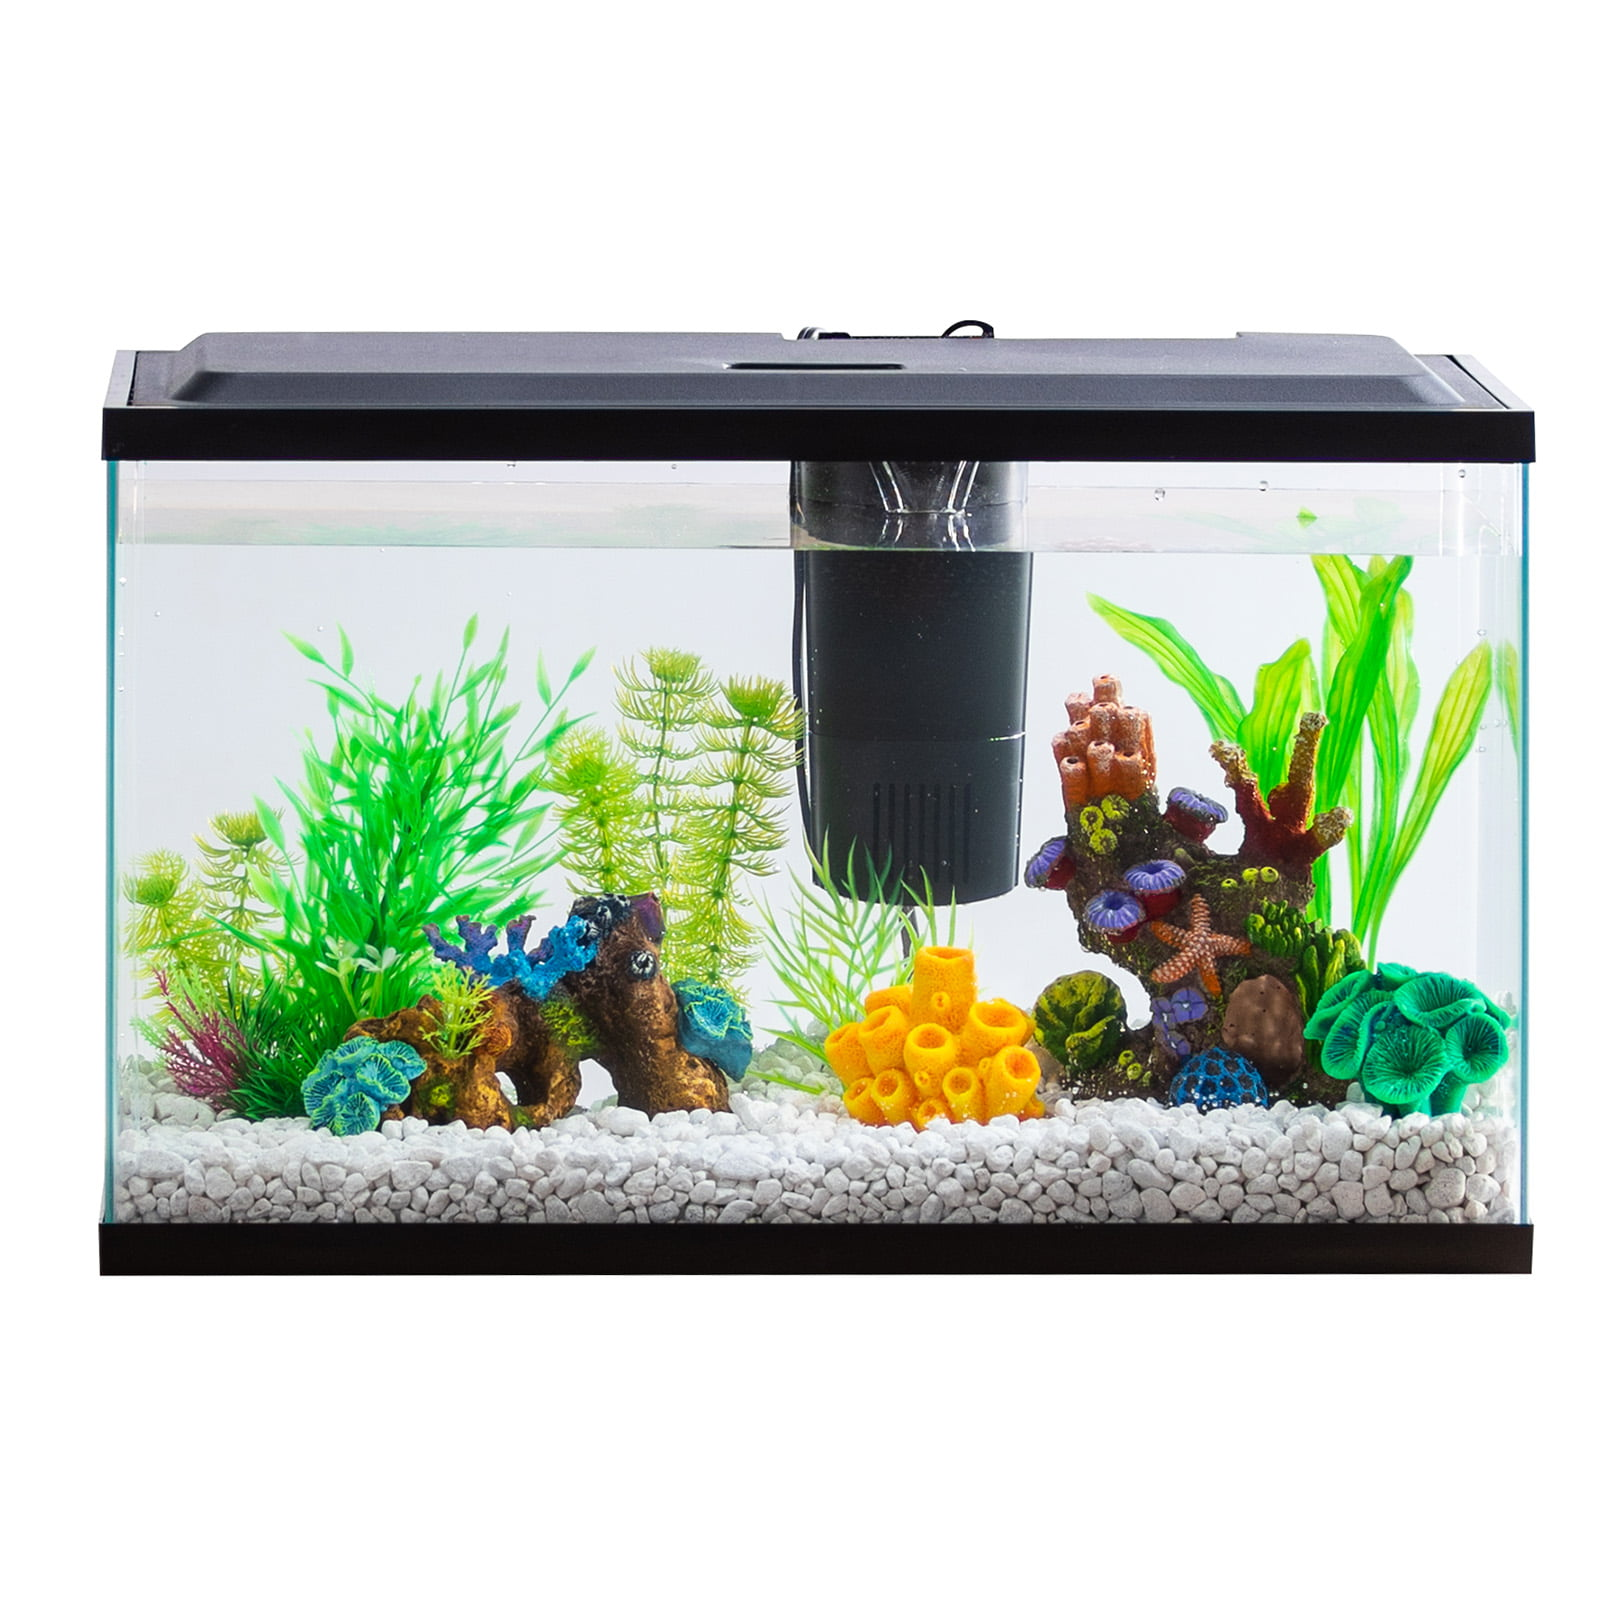 Aqua Culture 10-Gallon Aquarium Starter Kit With LED Lighting by Wal-Mart Stores, Inc.